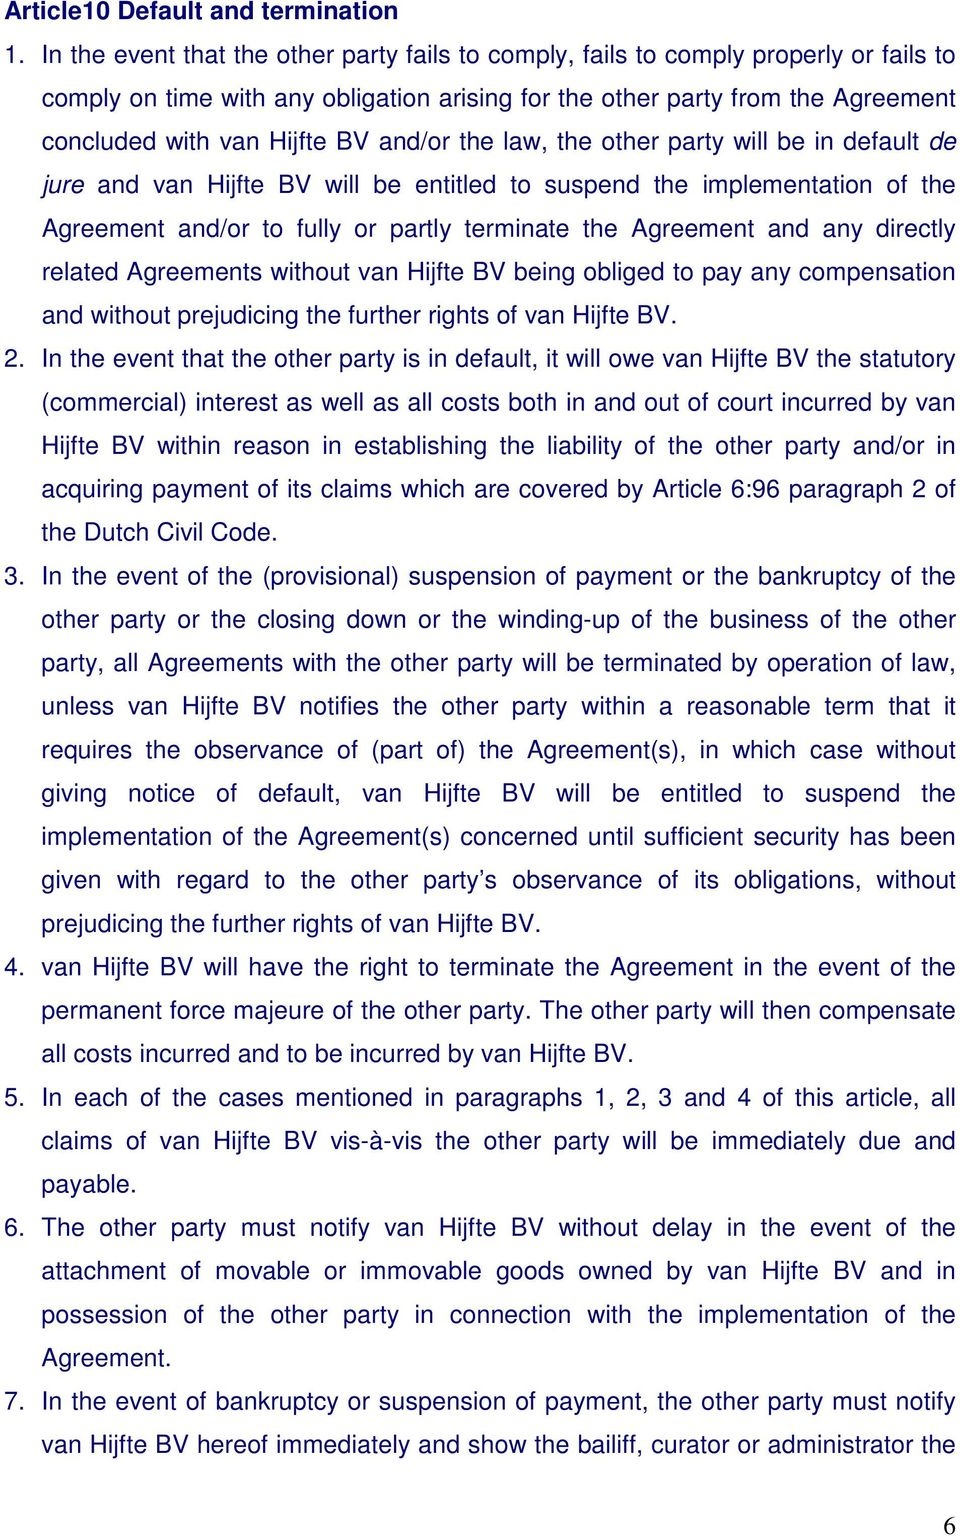 and/or the law, the other party will be in default de jure and van Hijfte BV will be entitled to suspend the implementation of the Agreement and/or to fully or partly terminate the Agreement and any